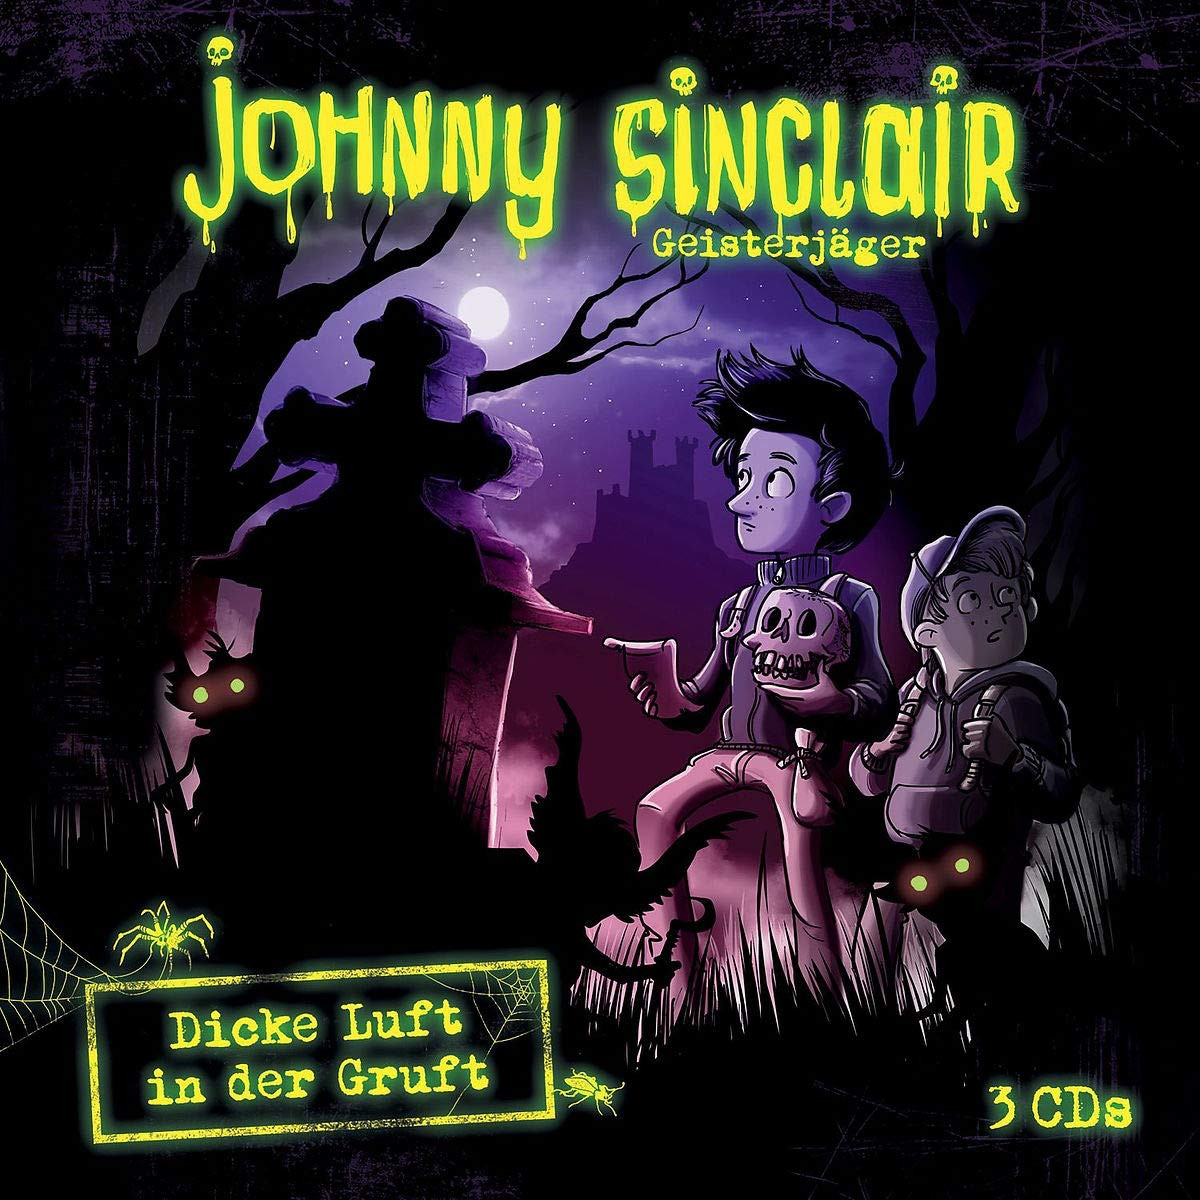 Johnny Sinclair - 3-CD Hörspielbox Vol.2 - Dicke Luft in der Gruft